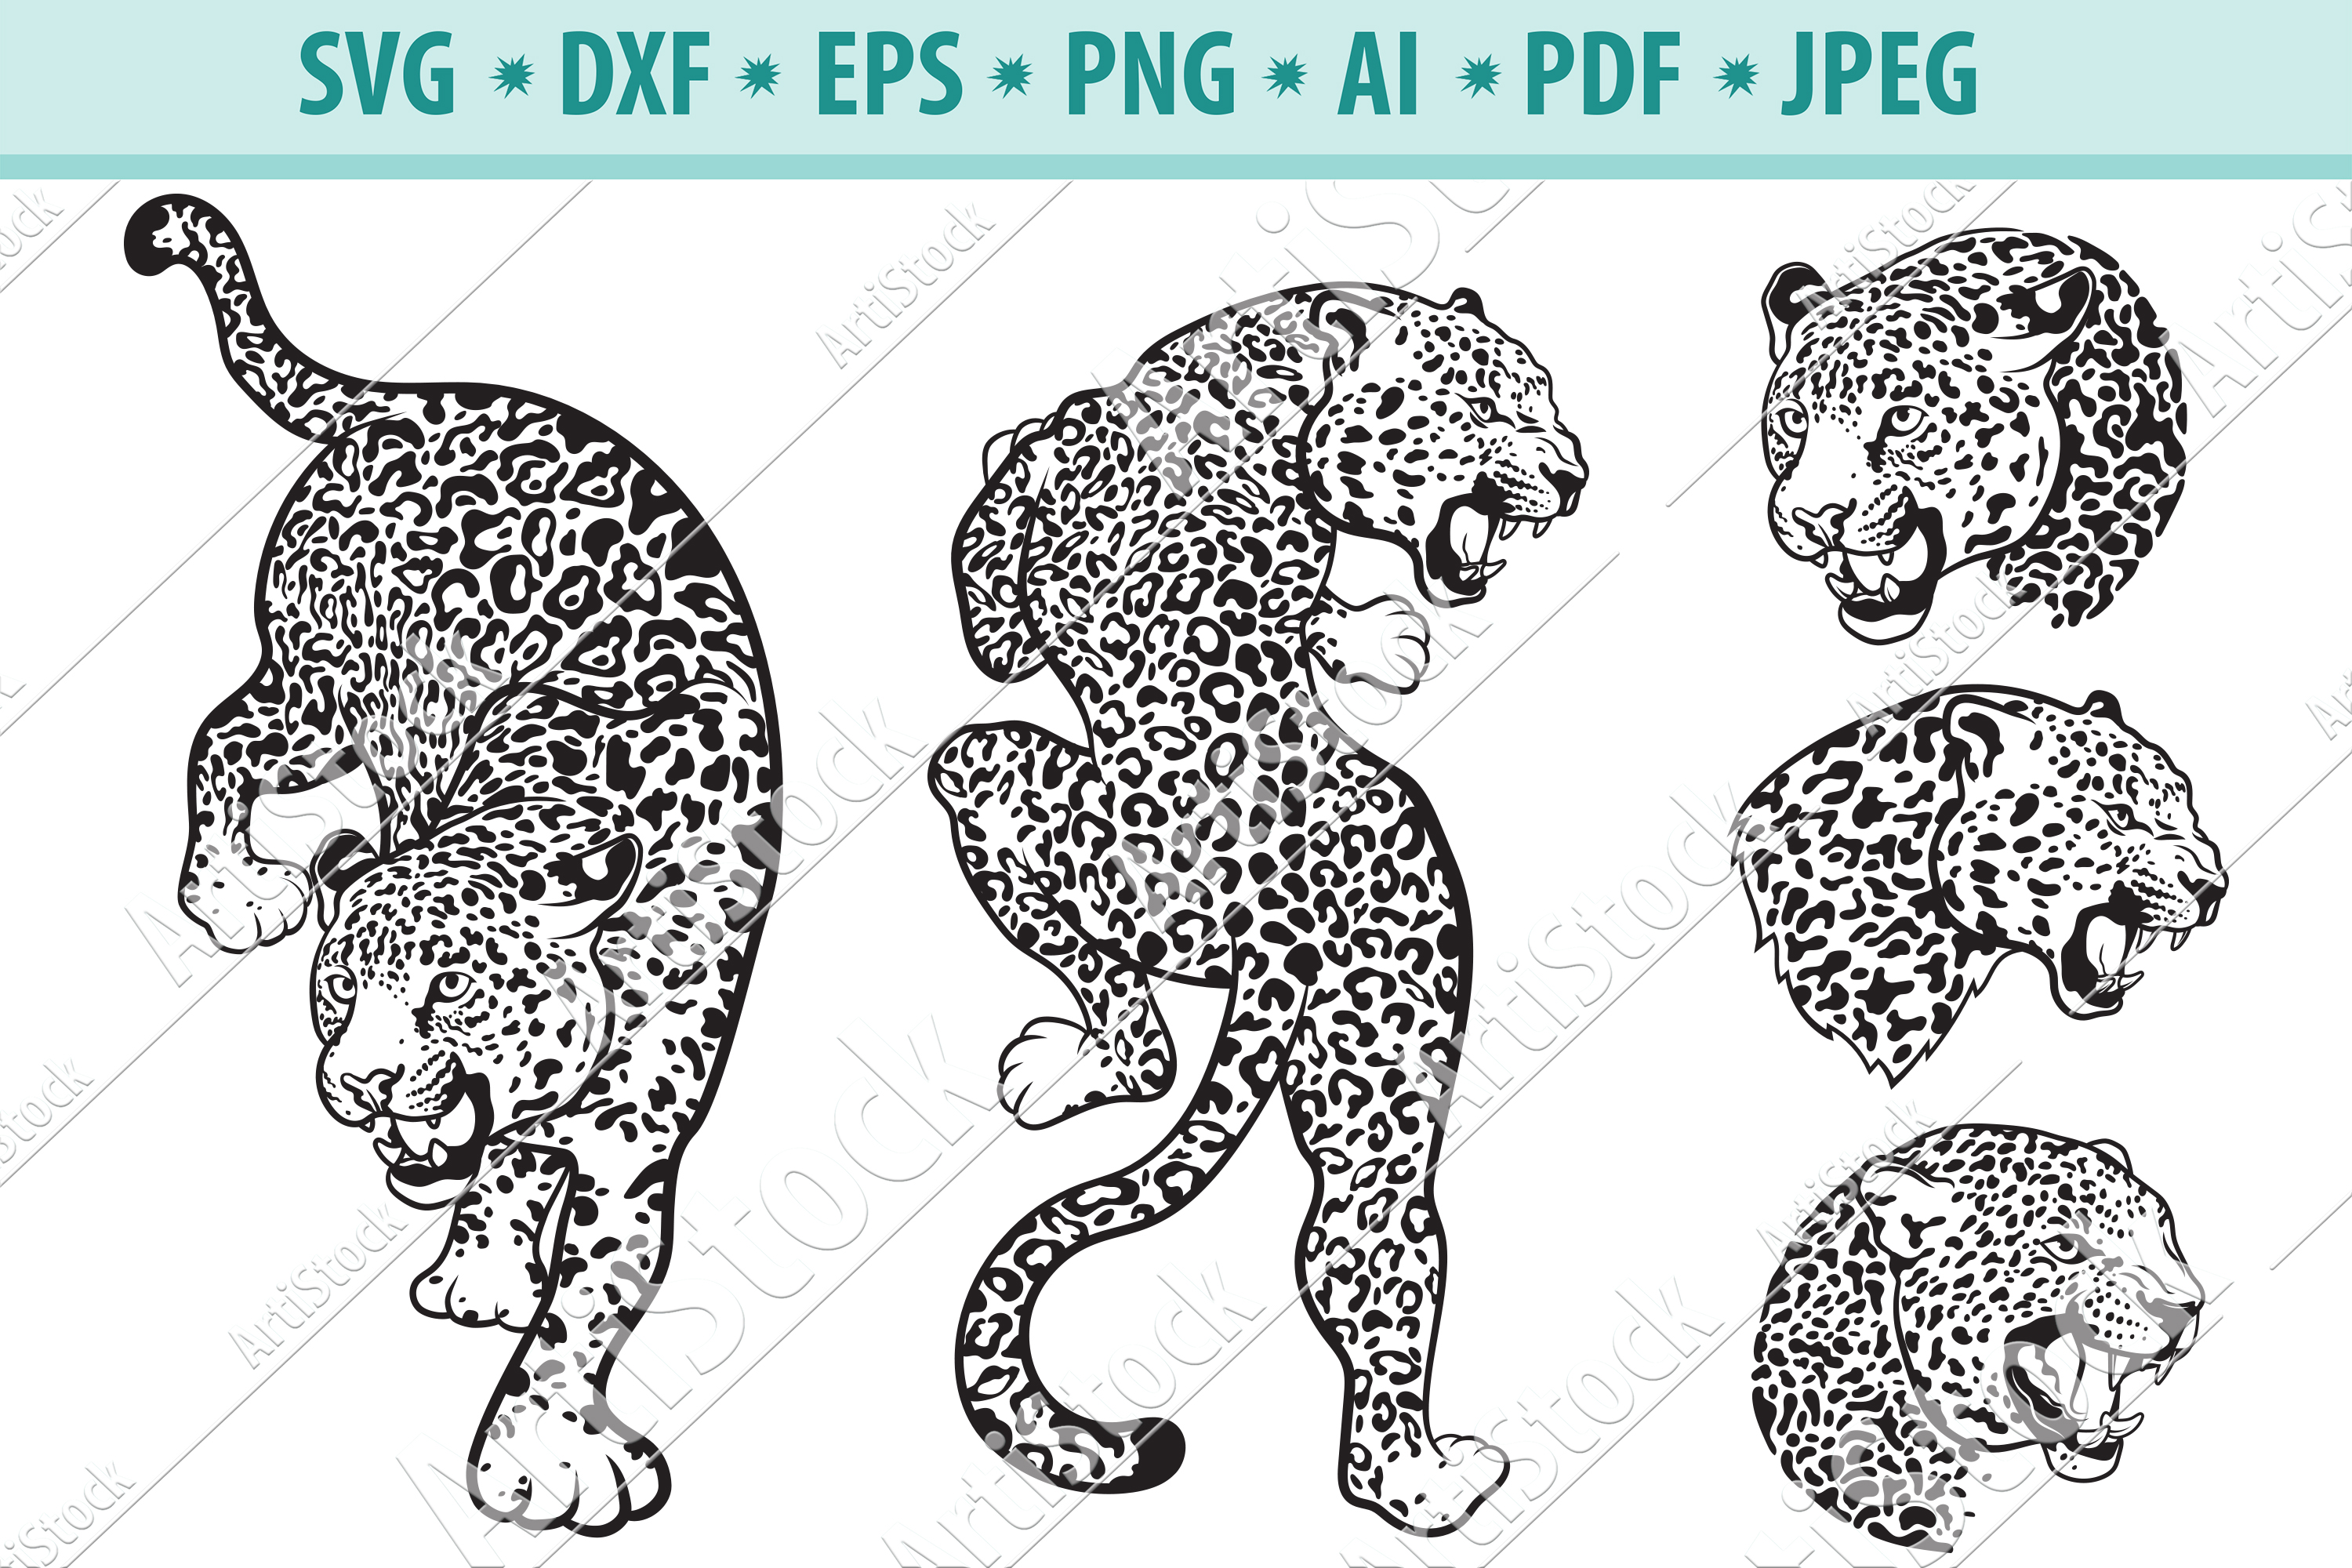 Leopard SVG, Wild cat Svg, Leopard Clipart, Dxf, Png, Eps example image 1